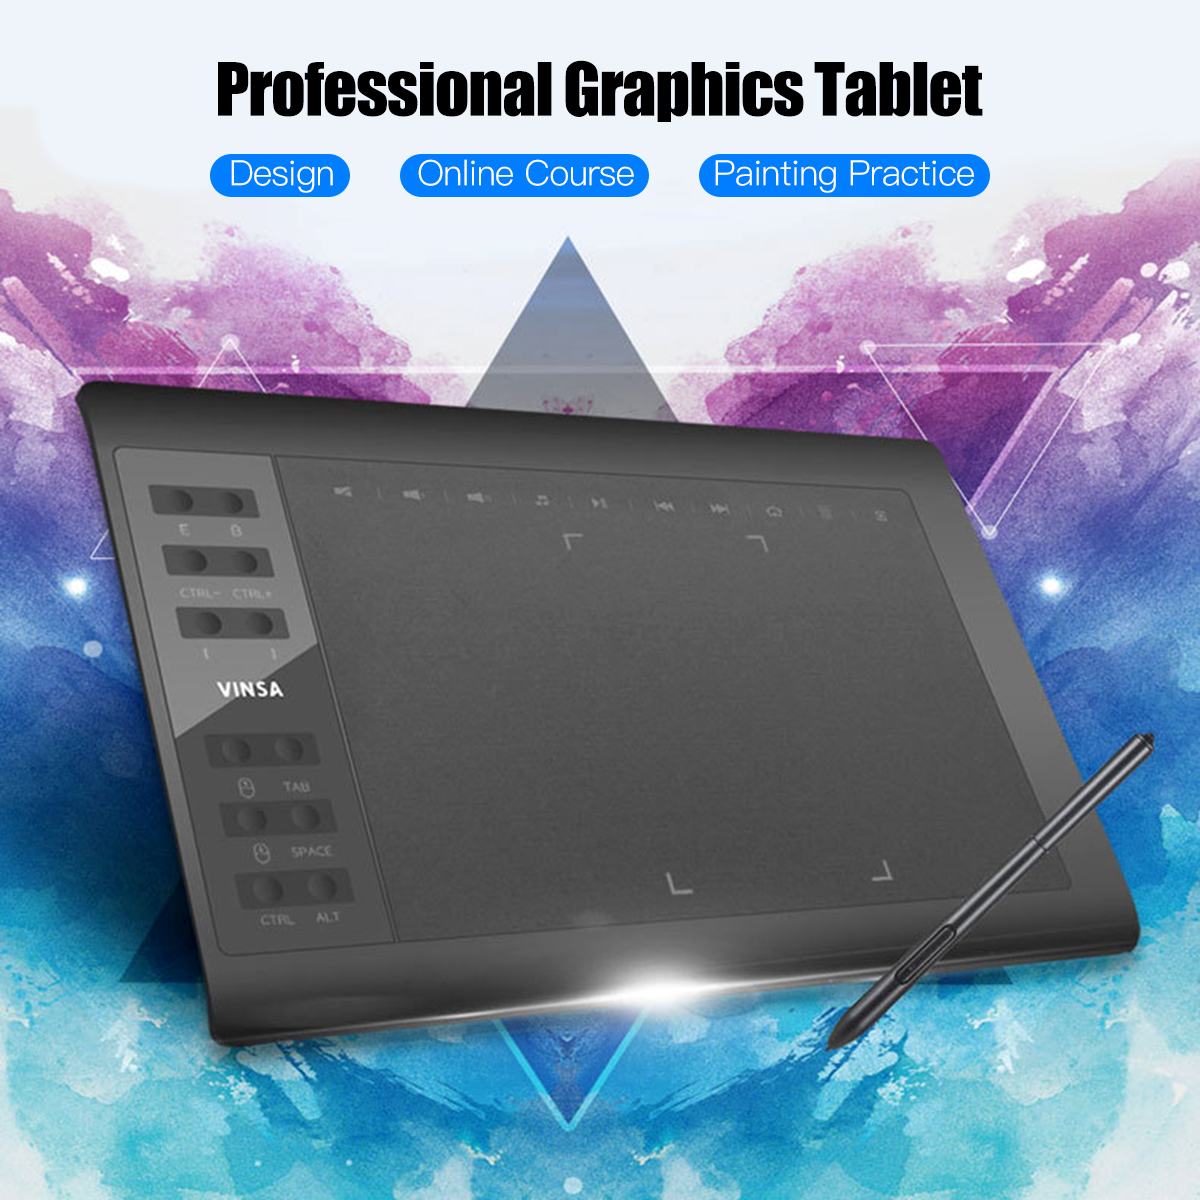 Professional Graphics Drawing Tablet 10x6 Inch 12 Express Keys 8192 Levels Battery-Free Stylus Nibs/Pen Clip Support PC/Laptop